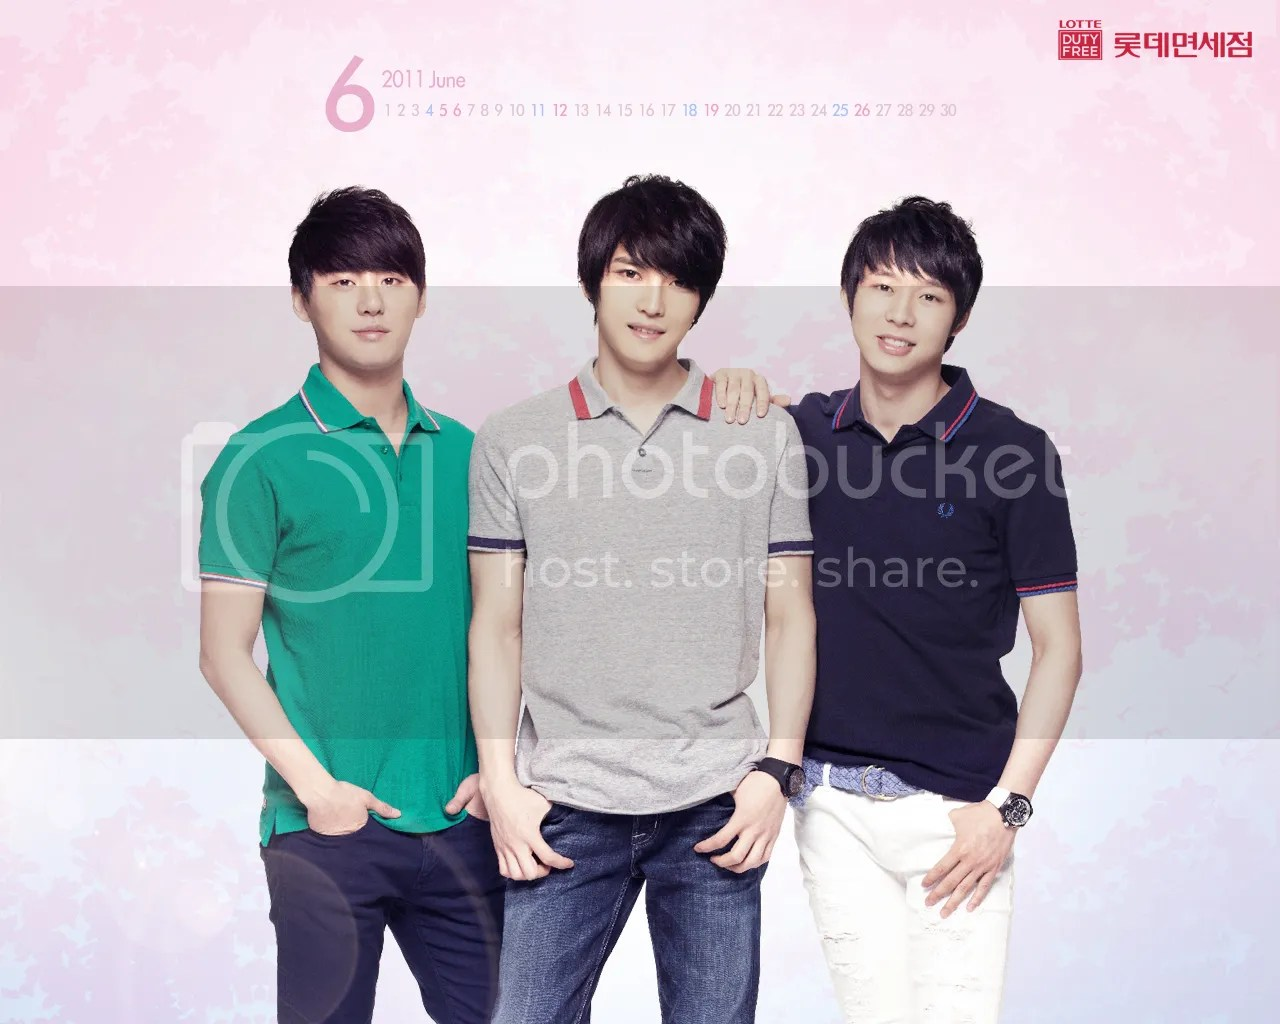 [PICS] Lotte's JYJ Wallpaper for June!